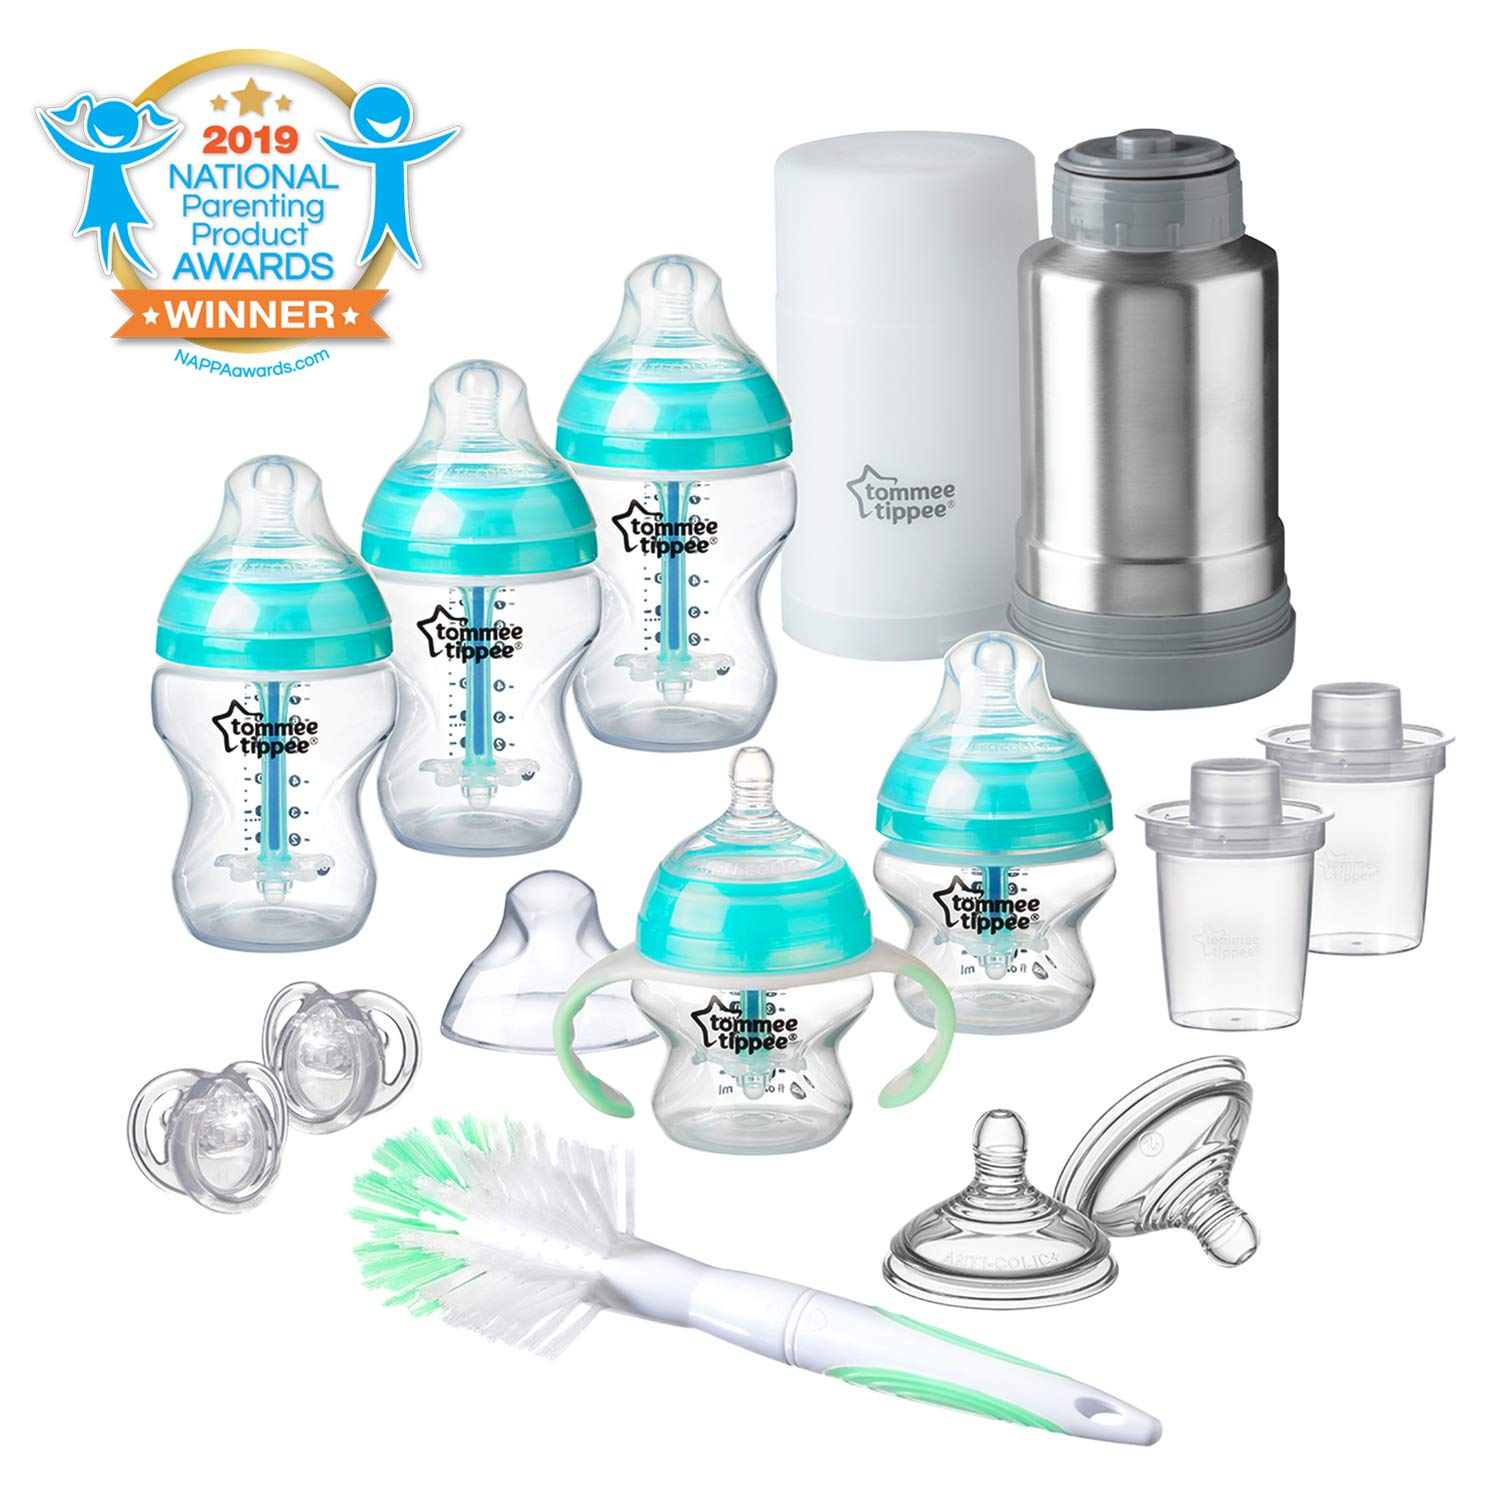 Tommee Tippee Advanced Anti-Colic Newborn Baby Bottle Feeding Gift Set, Heat Sensing Technology, BPA-Free by Tommee Tippee